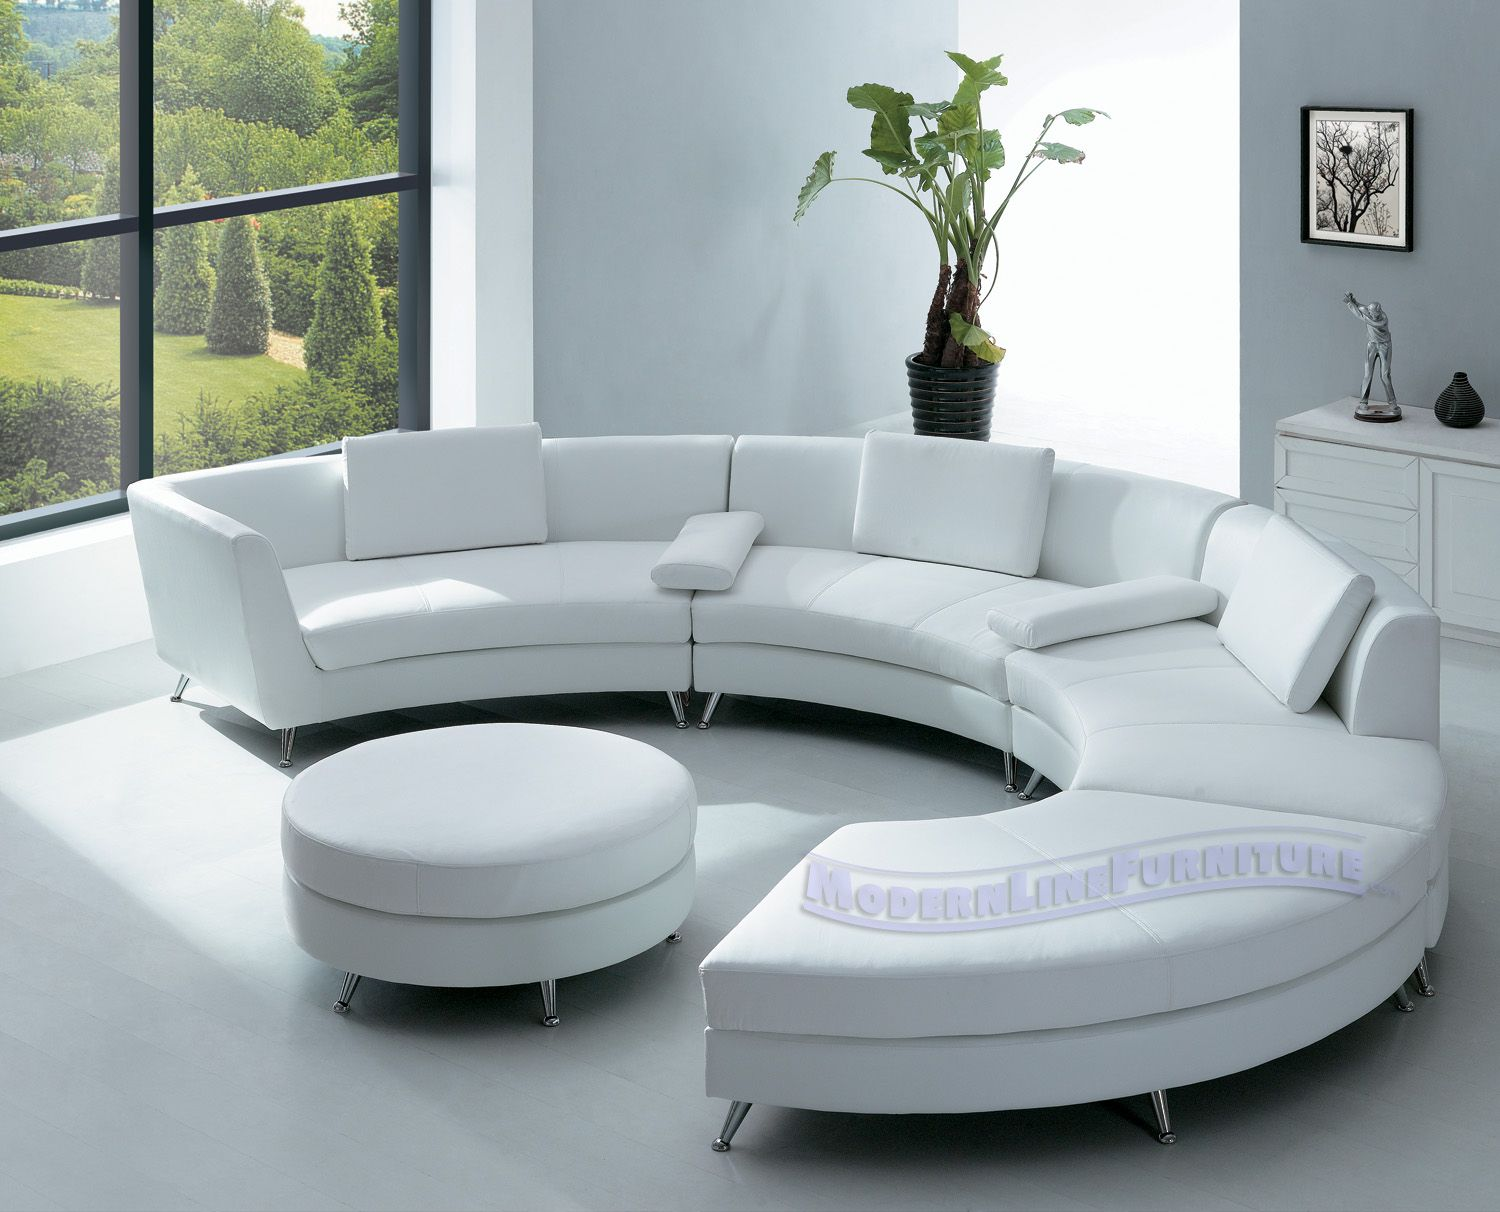 Modern Furniture Living Room white modern furniture, white modern furniture, delightful